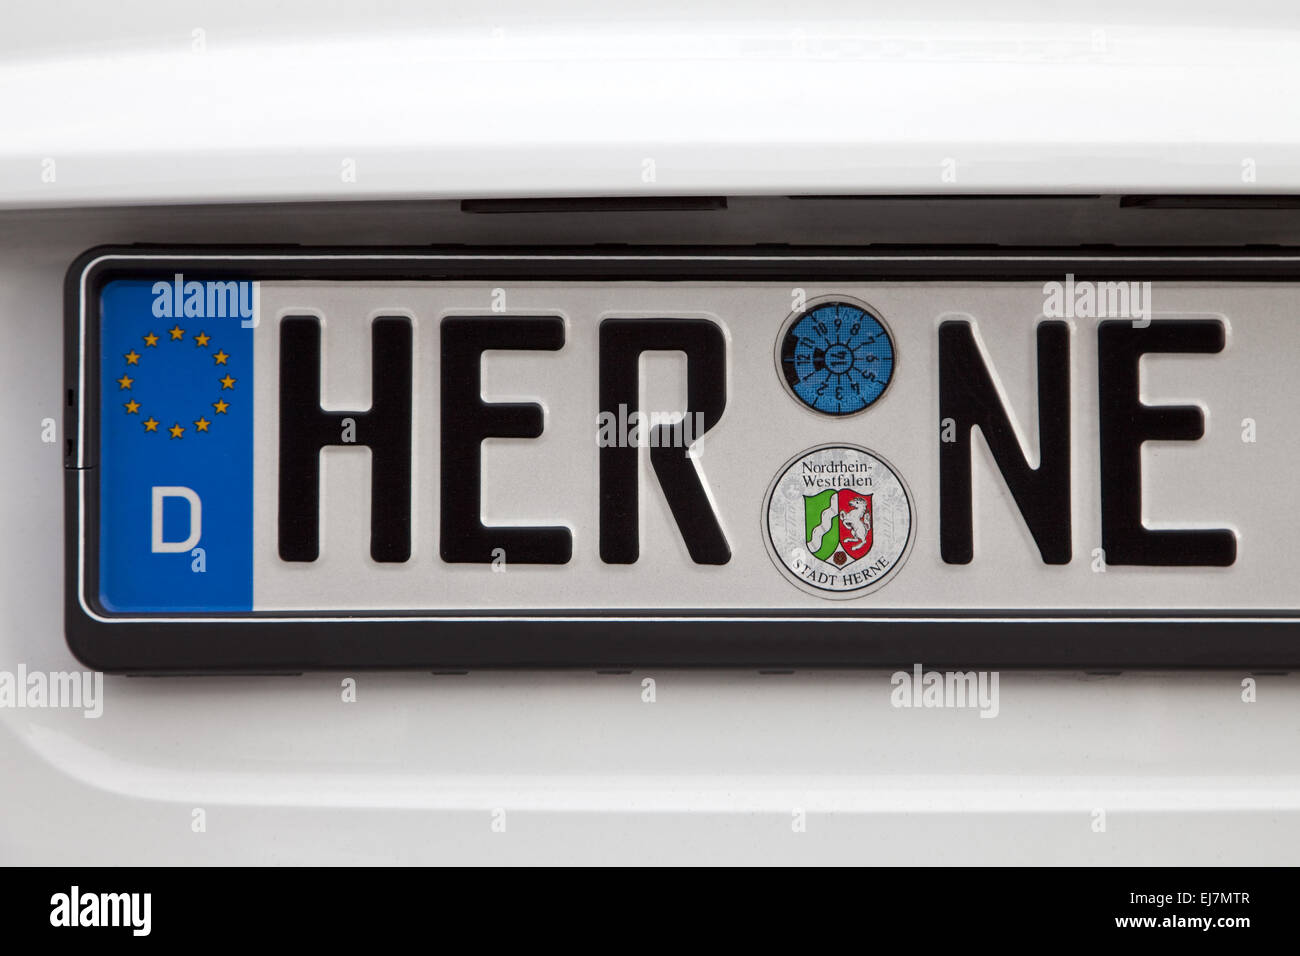 Car license plate Herne, German - Stock Image